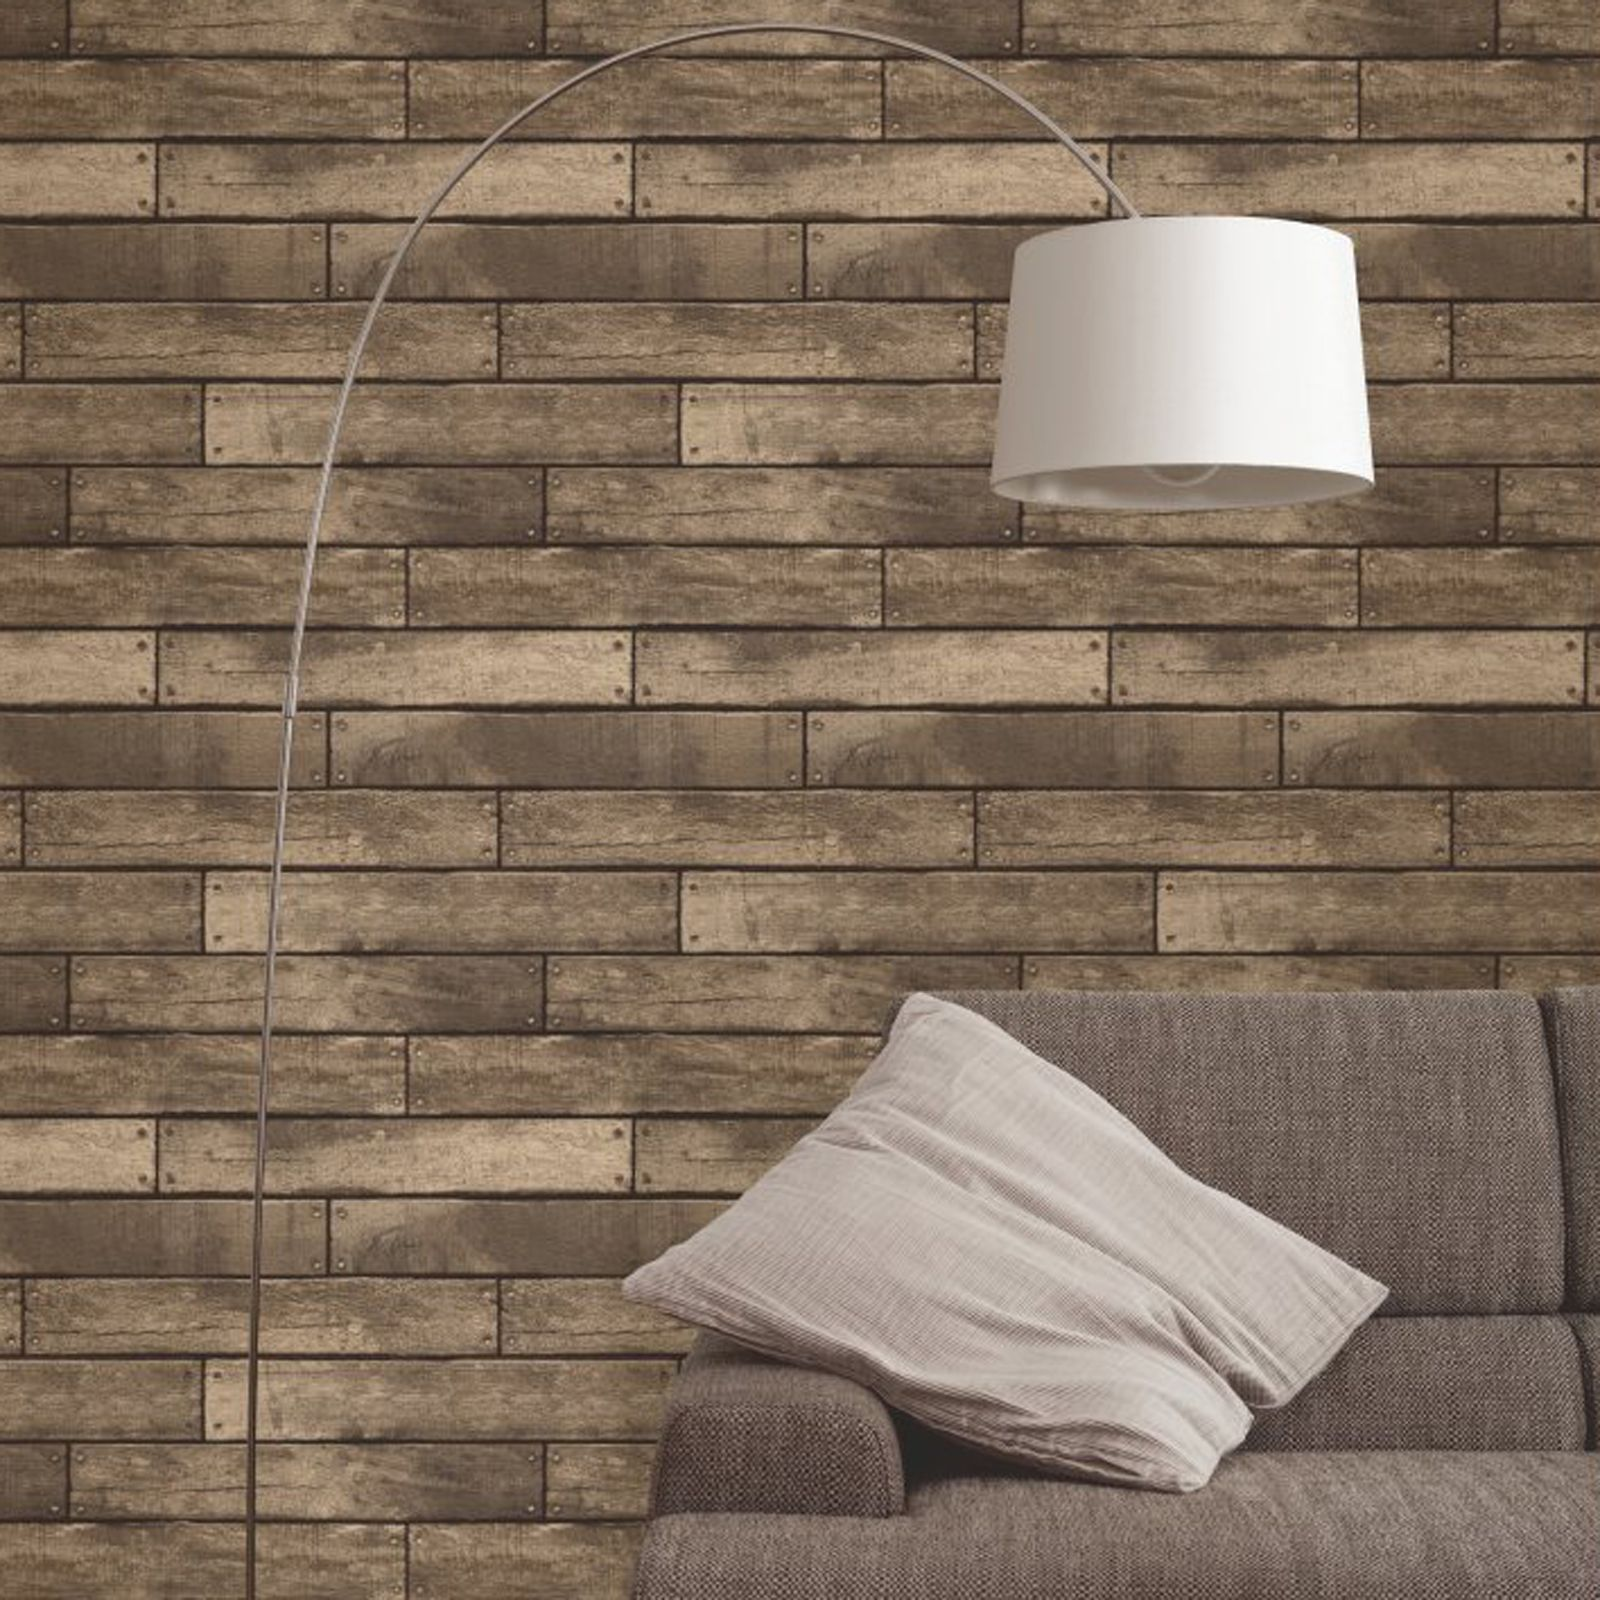 FINE DECOR LUXURY 10M EFFECTS WALLPAPER – STONE BRICK WOOD SLATE NEW ...